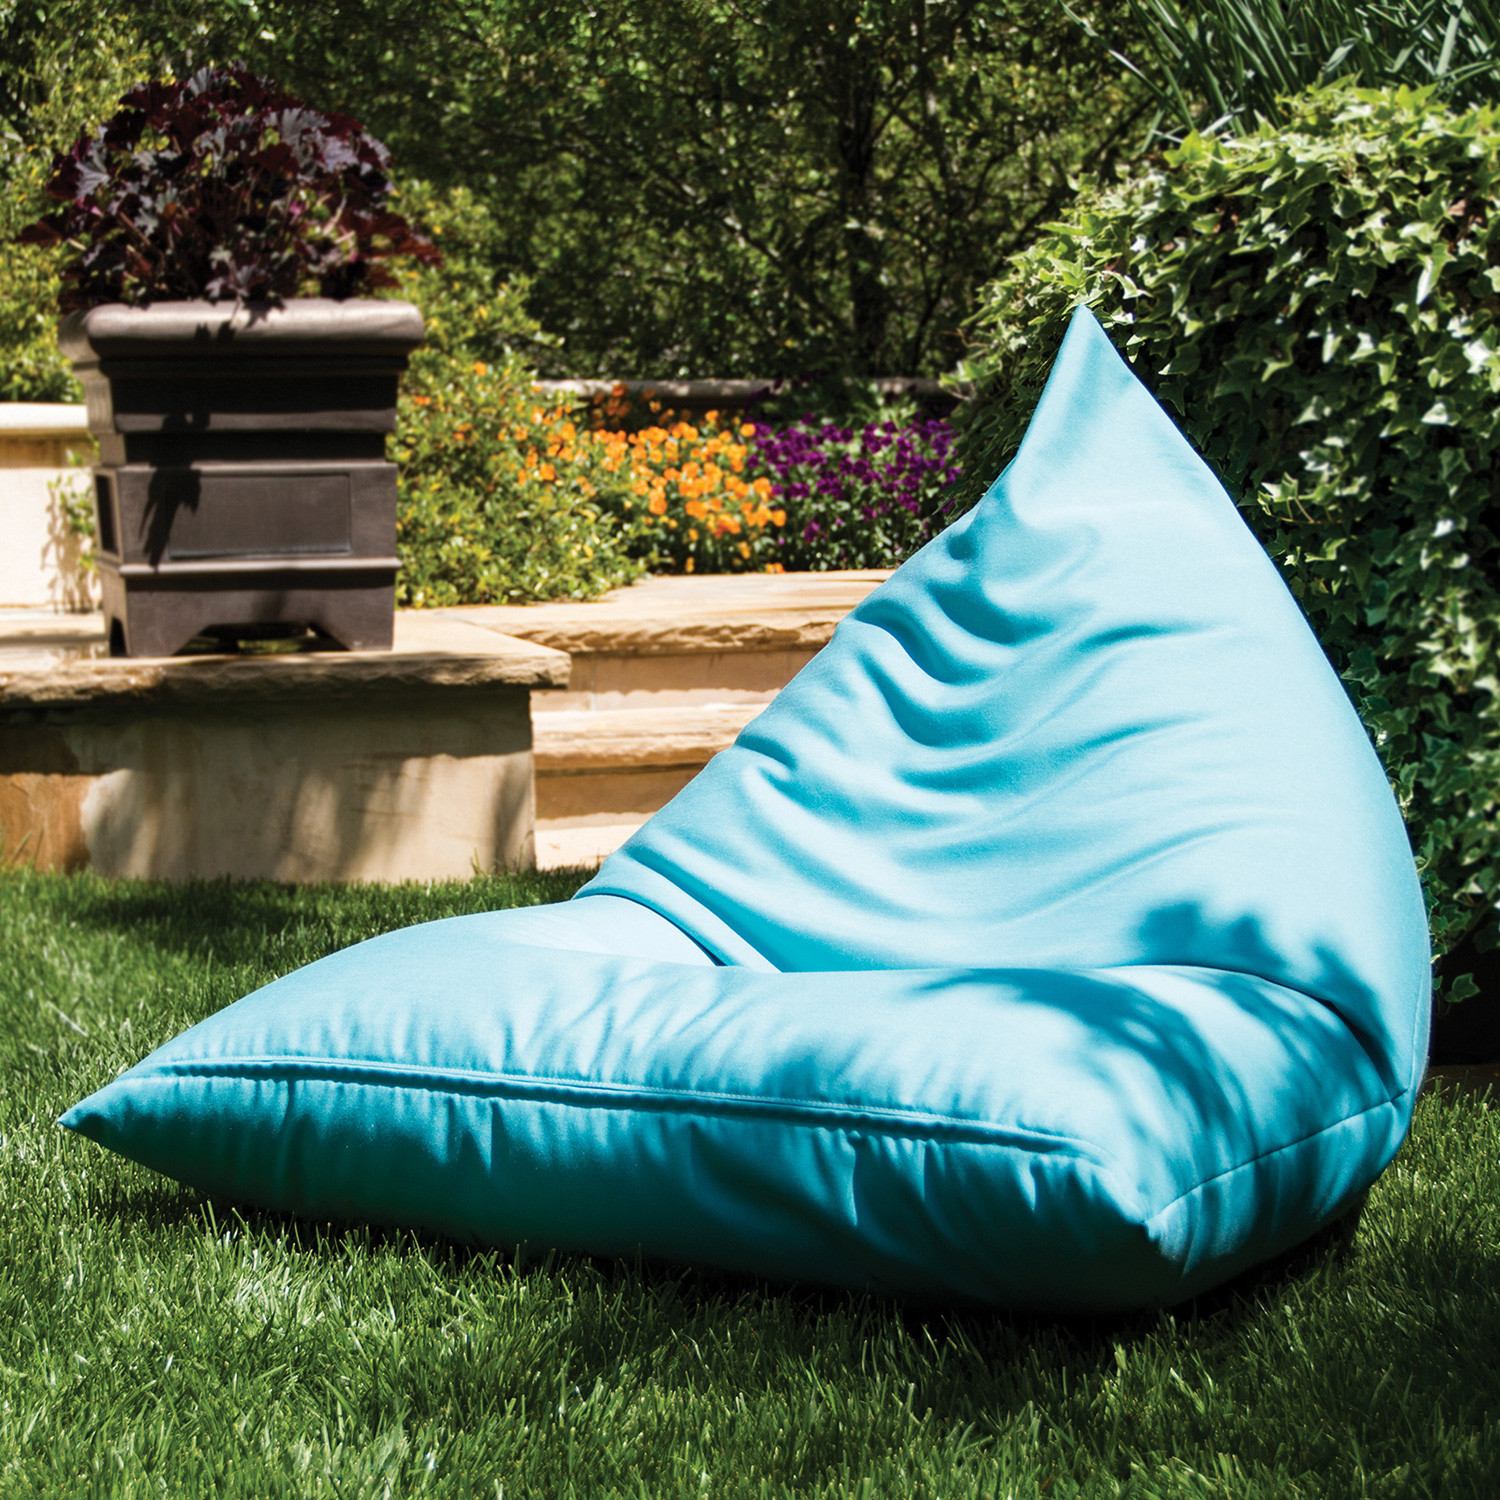 Outdoor Bean Bag Chairs Jaxx Twist Outdoor Bean Bag Light Blue Jaxx Outdoor